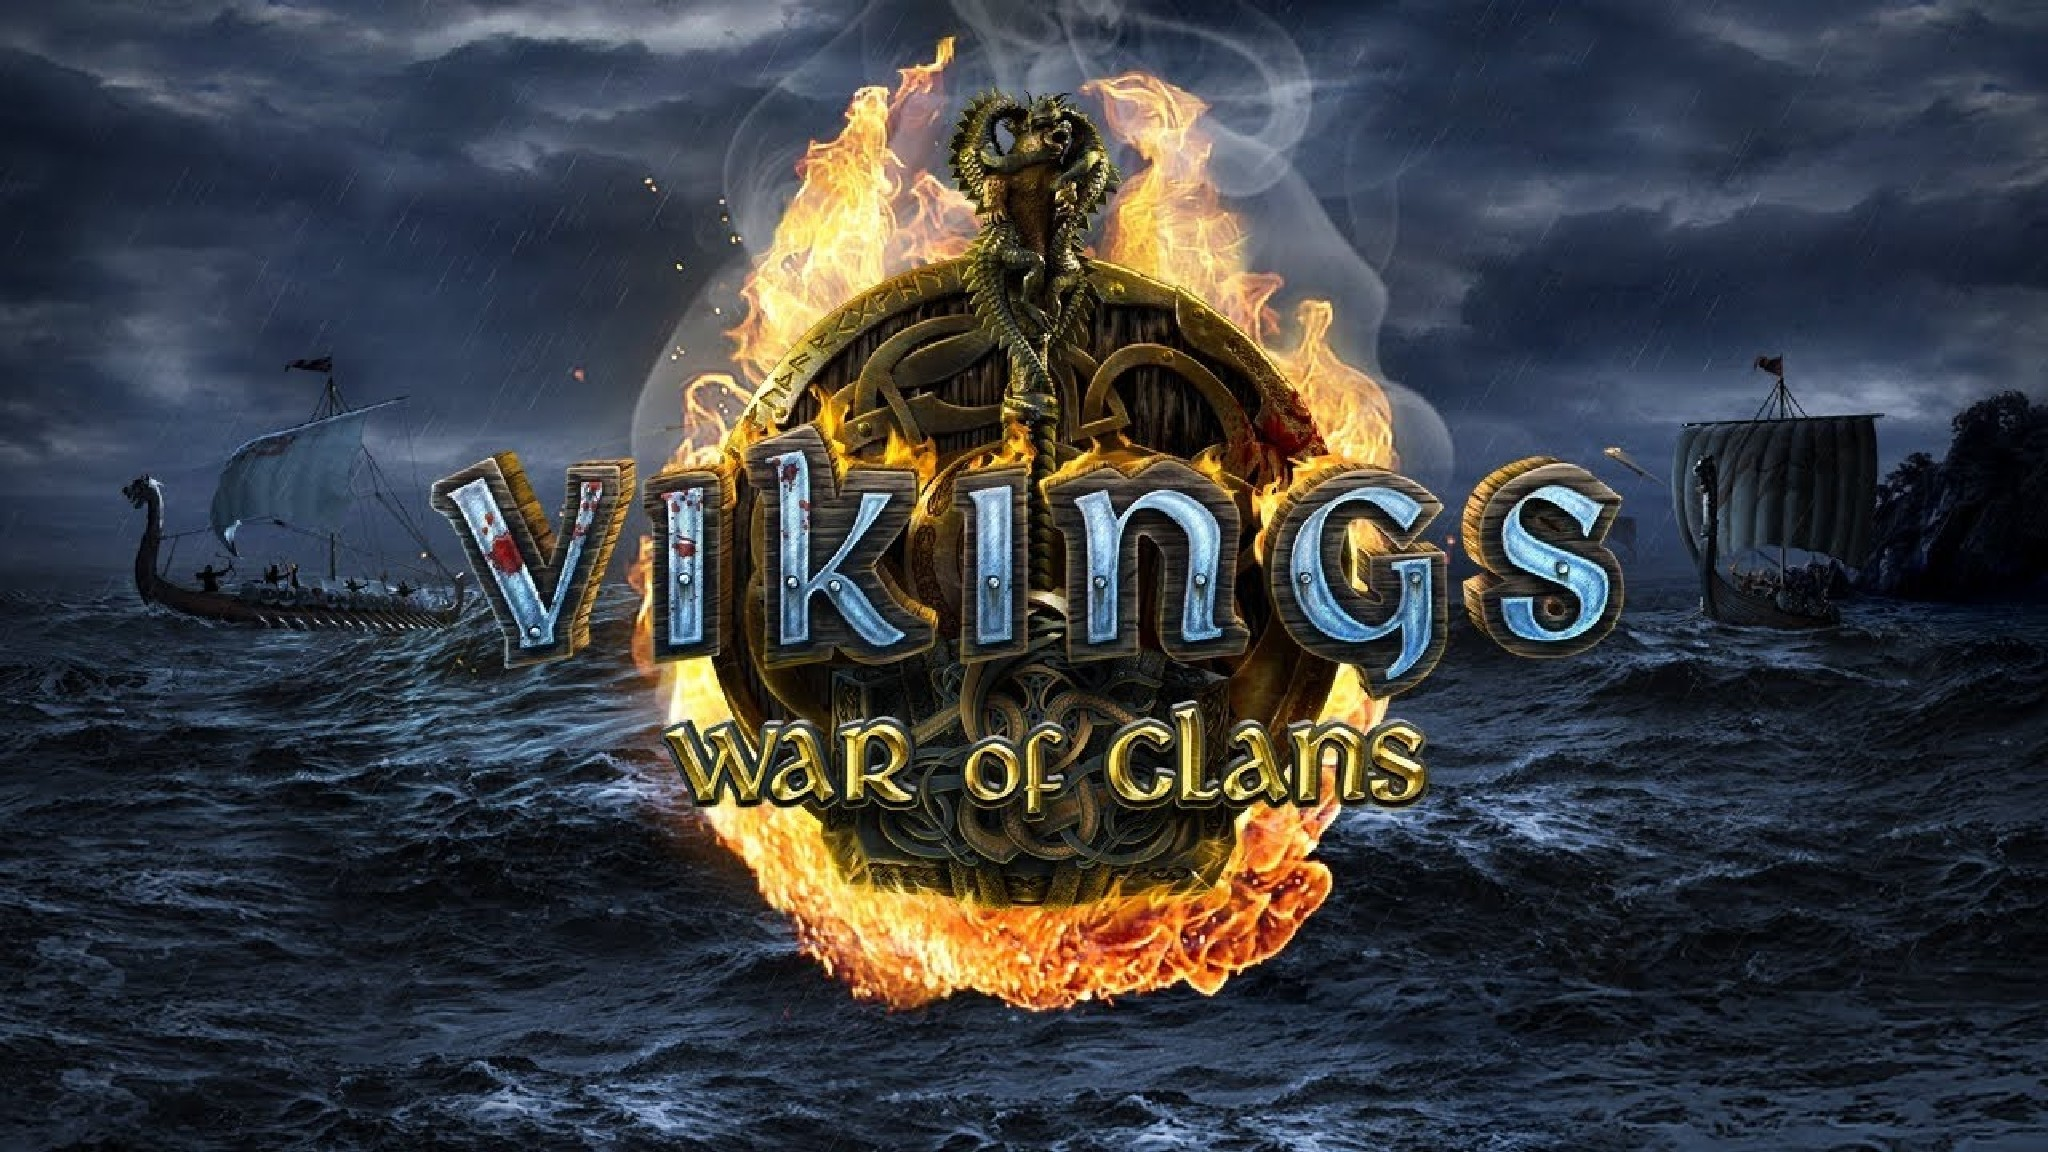 Играть Vikings War of Clans в браузере онлайн